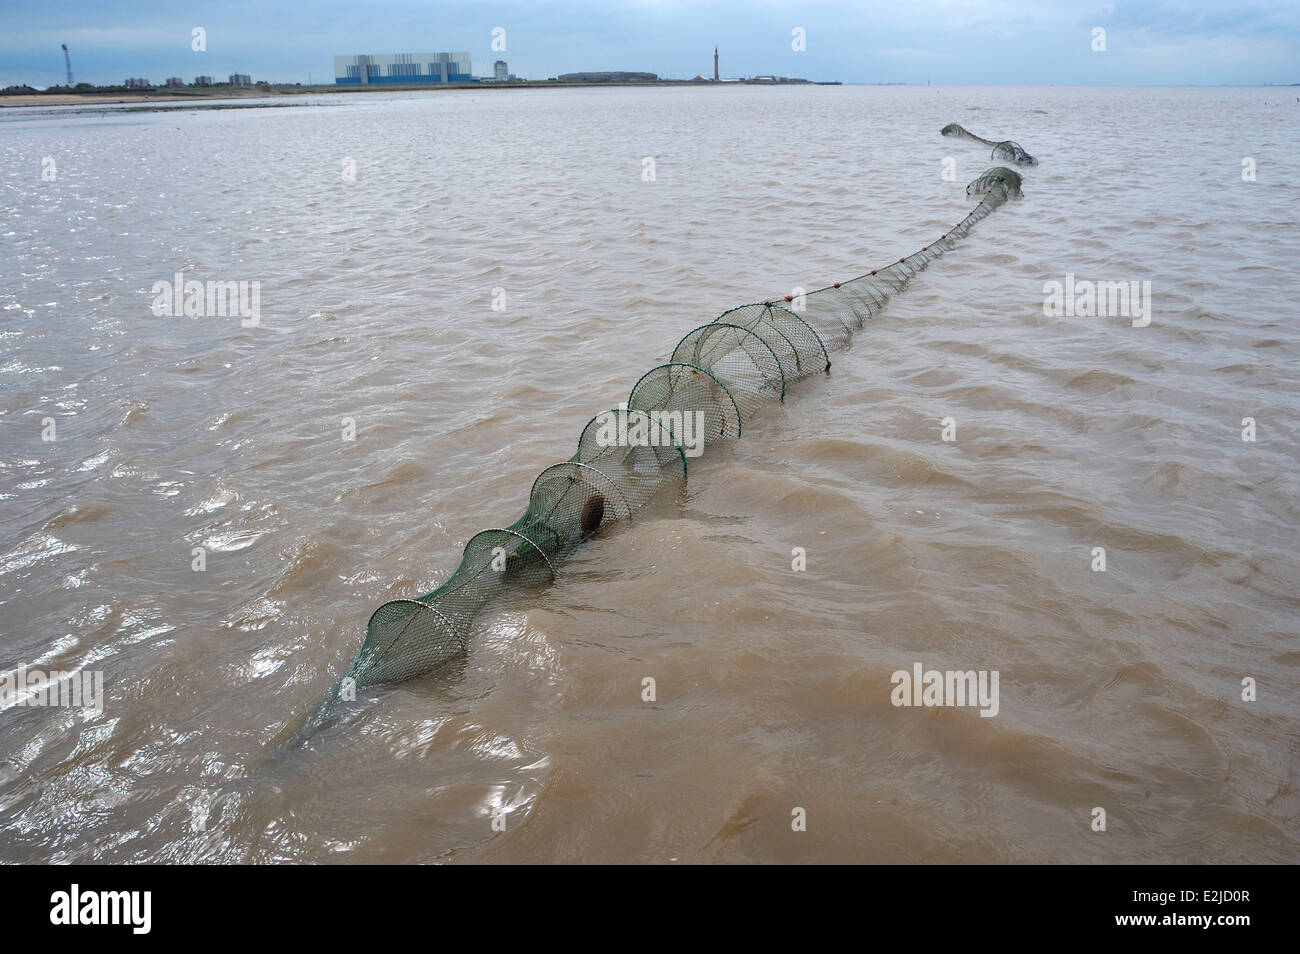 Traditional Fishing for soles and eels using double ended Fyke nets on the Humber Estuary mudflats - Stock Image